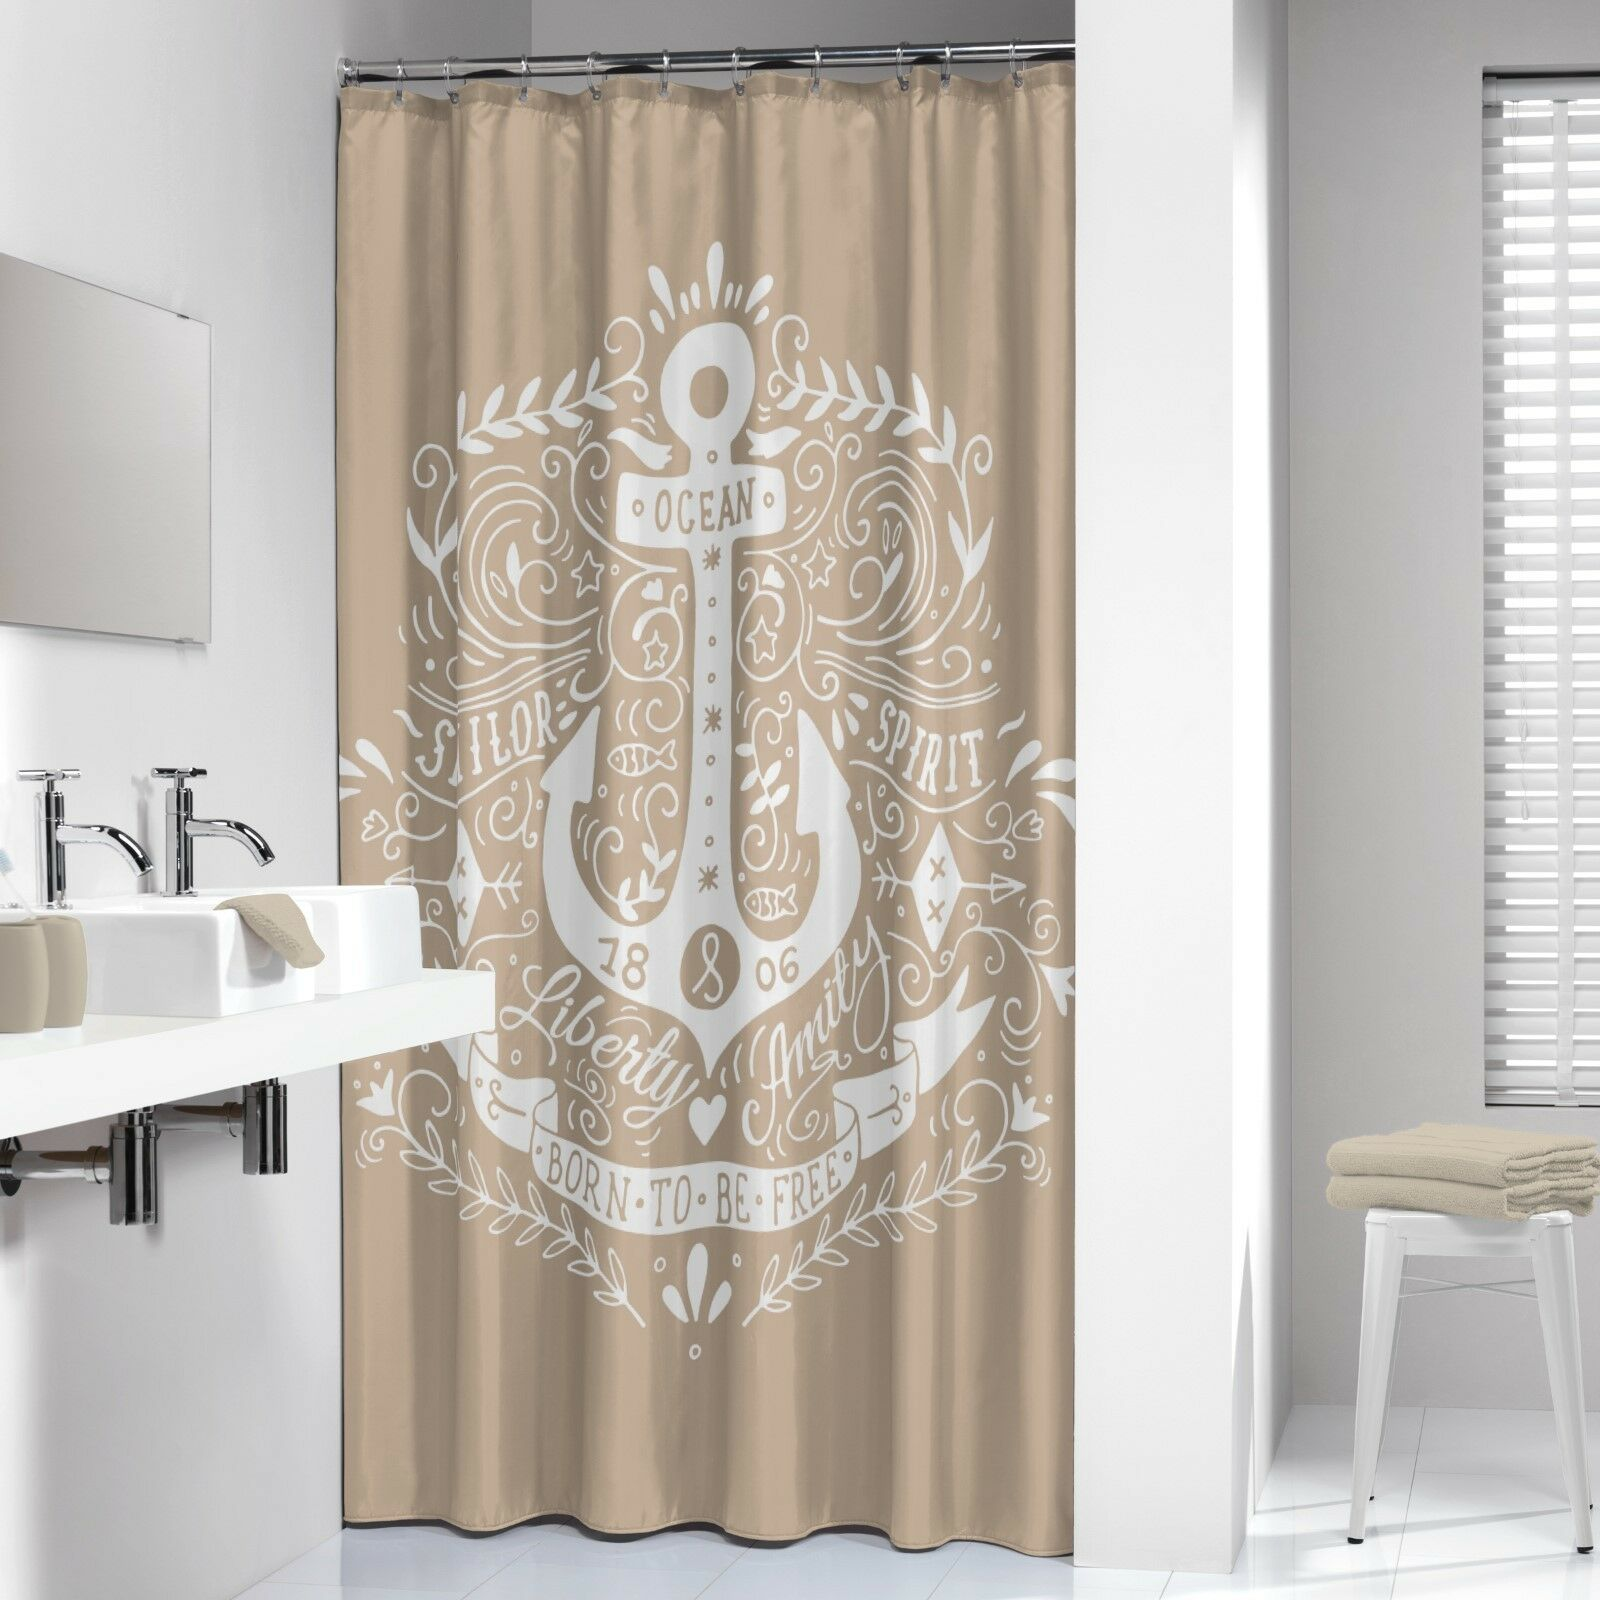 extra long shower curtain 72 x 78 inch sealskin anchor beige and